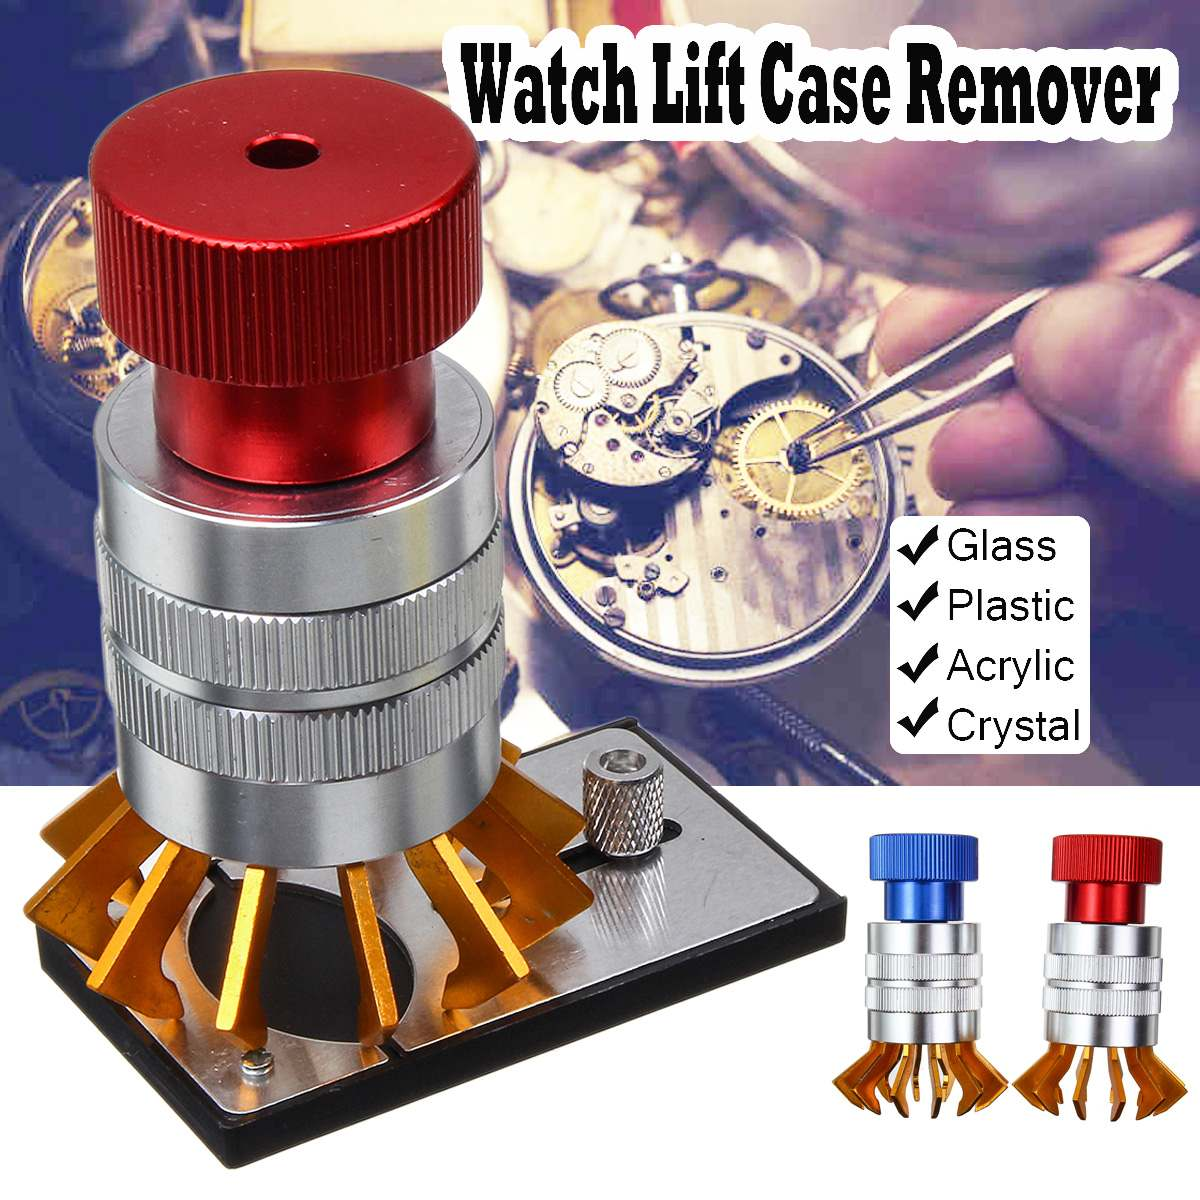 Watch Plastic Crystal Watchmaker Lift Front Case Remover Inserter Watch Glass Remove Replace Repair Opener ToolWatch Plastic Crystal Watchmaker Lift Front Case Remover Inserter Watch Glass Remove Replace Repair Opener Tool